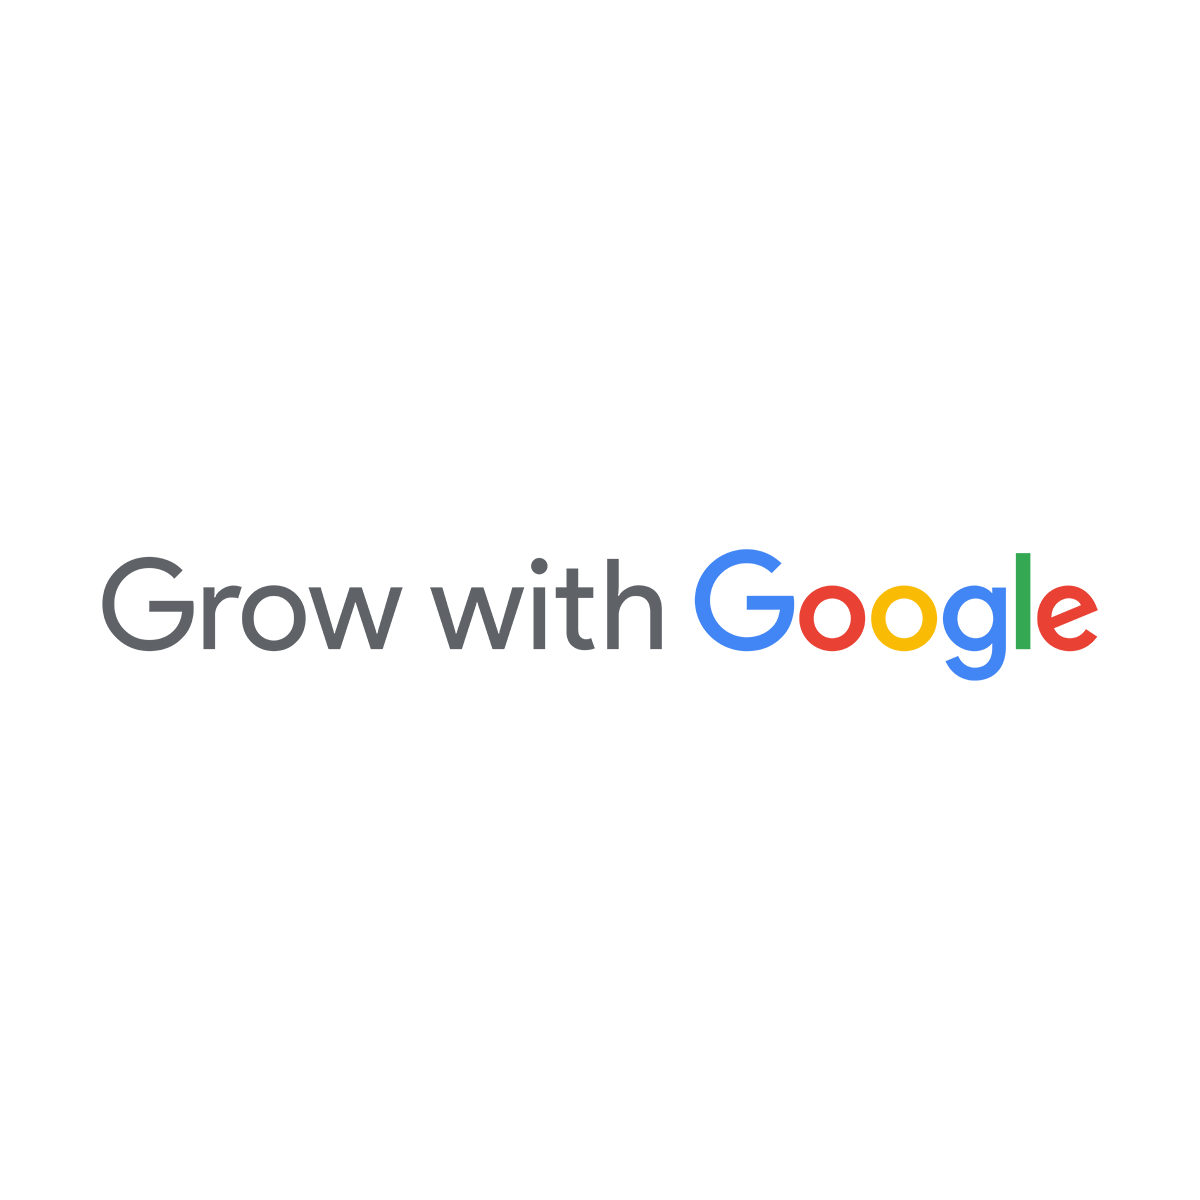 Professional Certificate Training Programs - Grow with Google